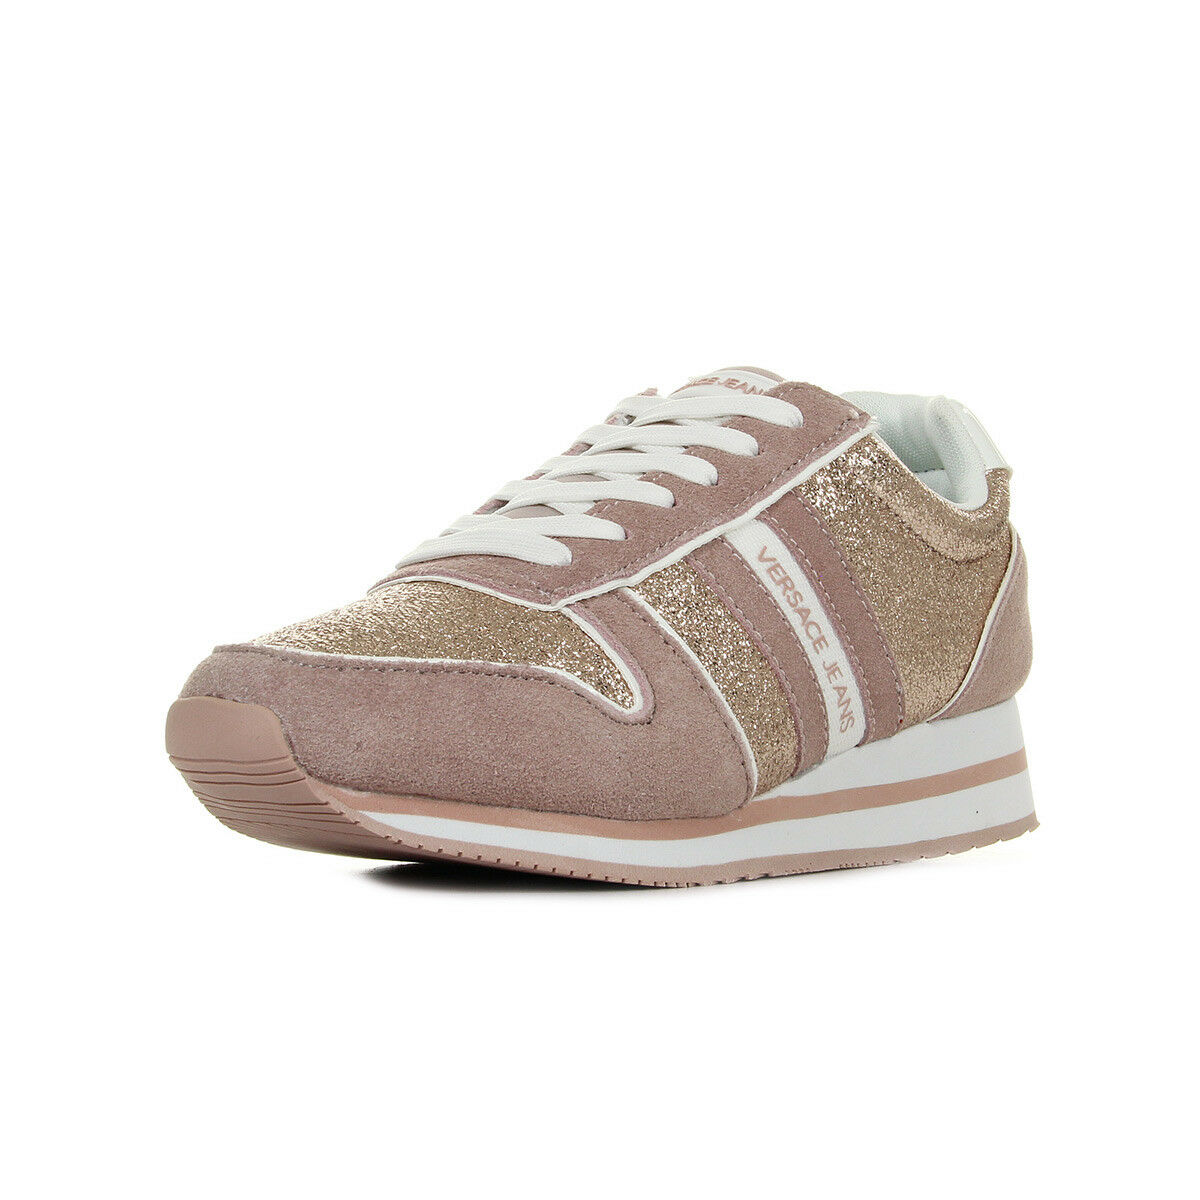 Chaussures Baskets Versace Jeans femme Linea Fondo Stella Dis1 Suede Coated